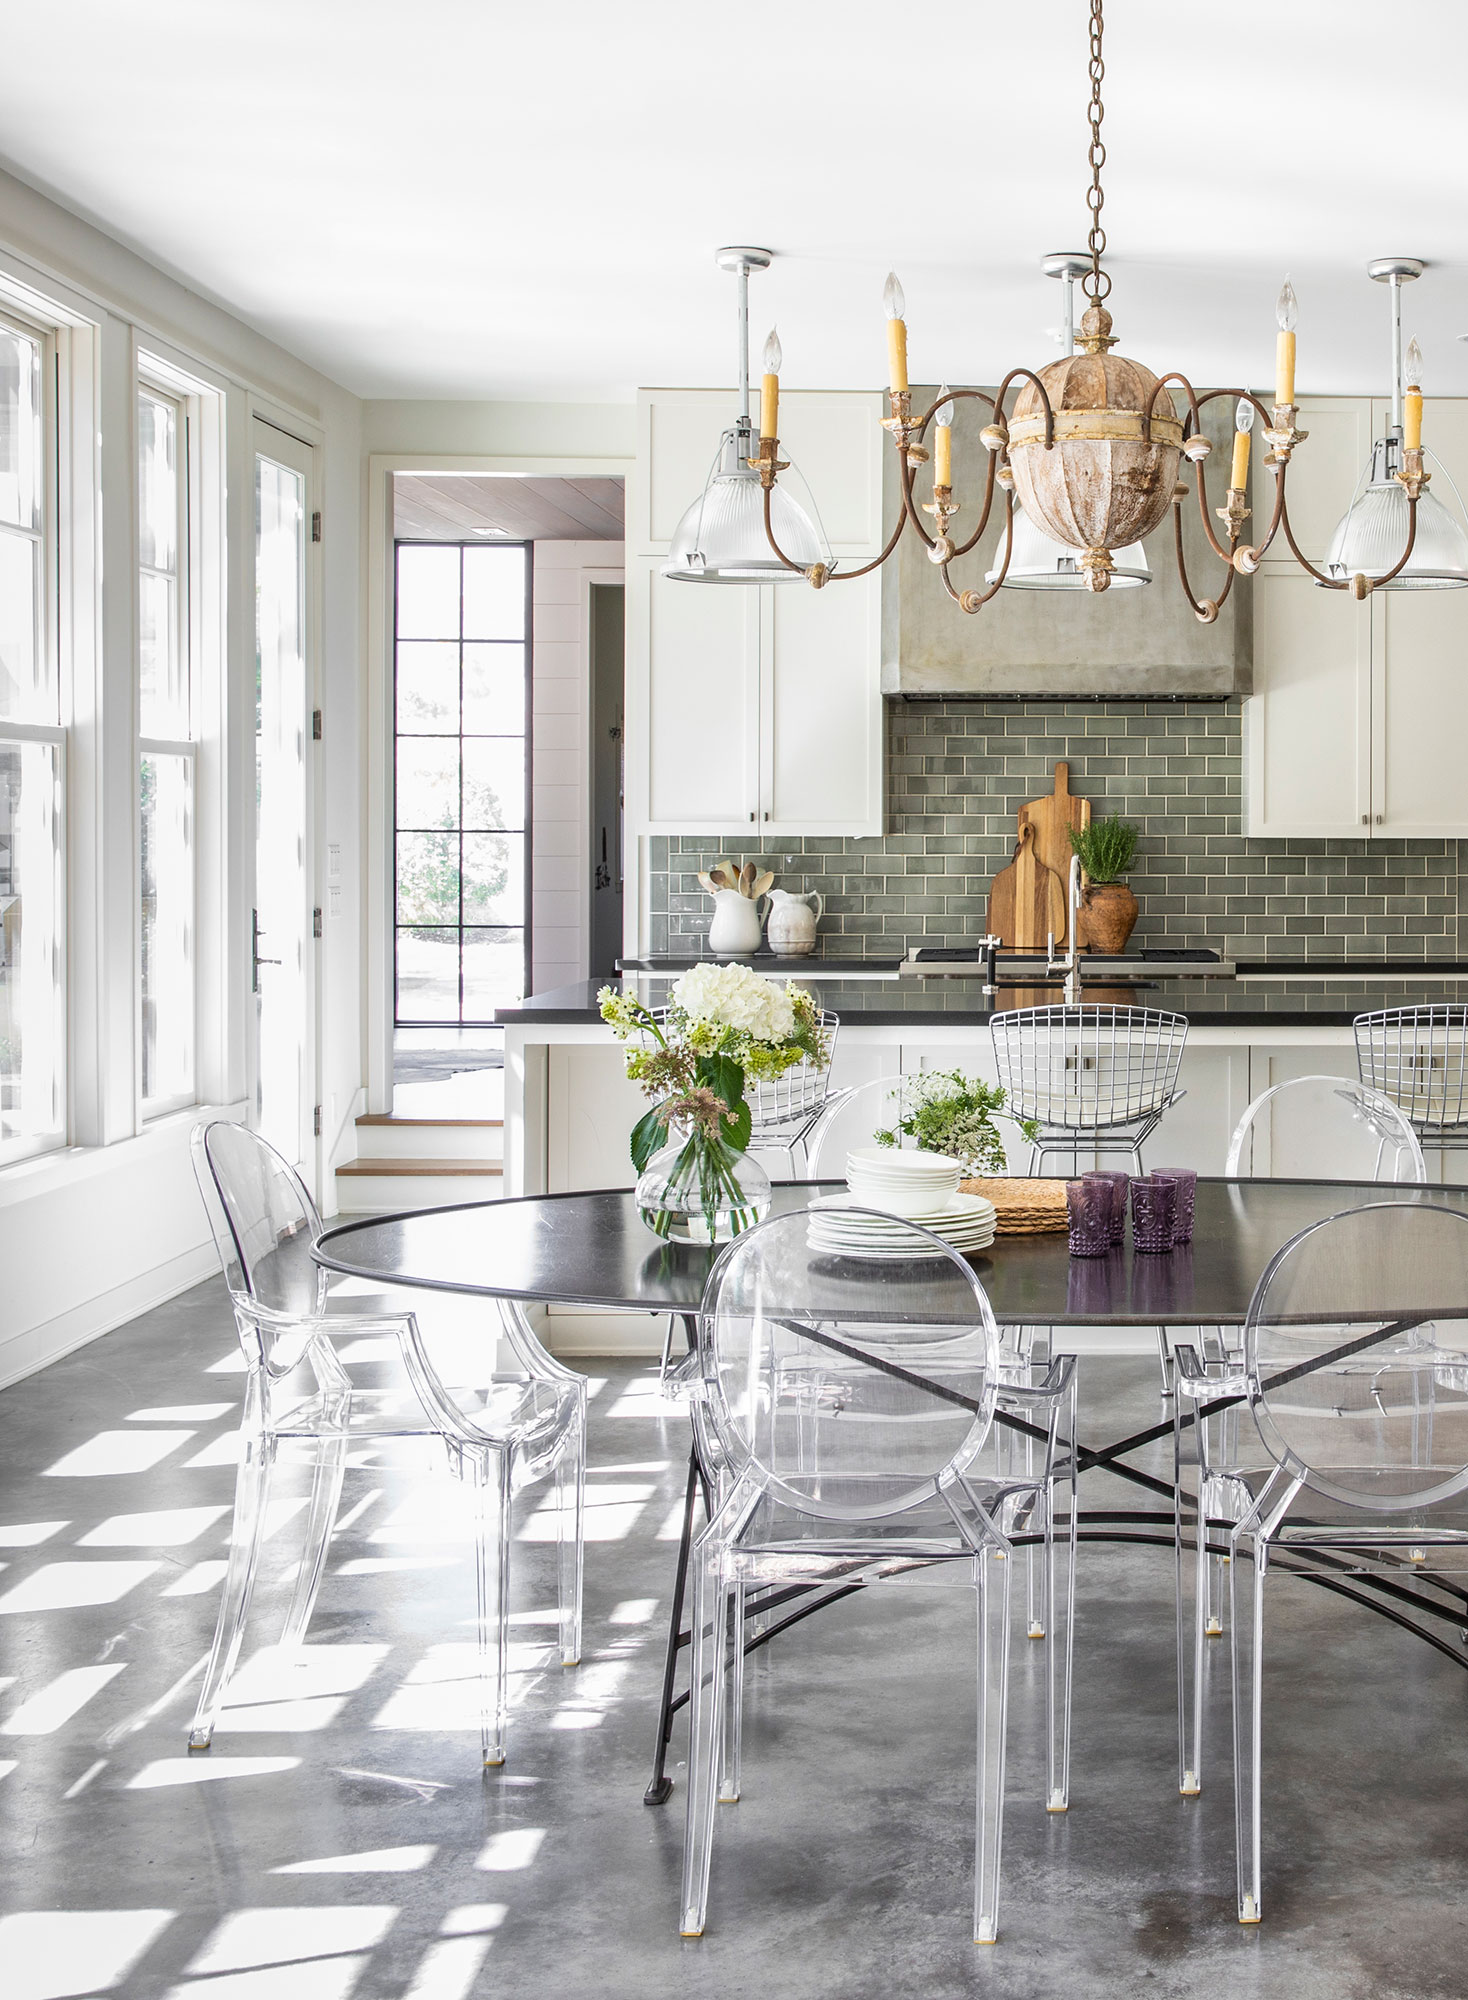 Kitchen - Interiors Photography - Julie Soefer Photography